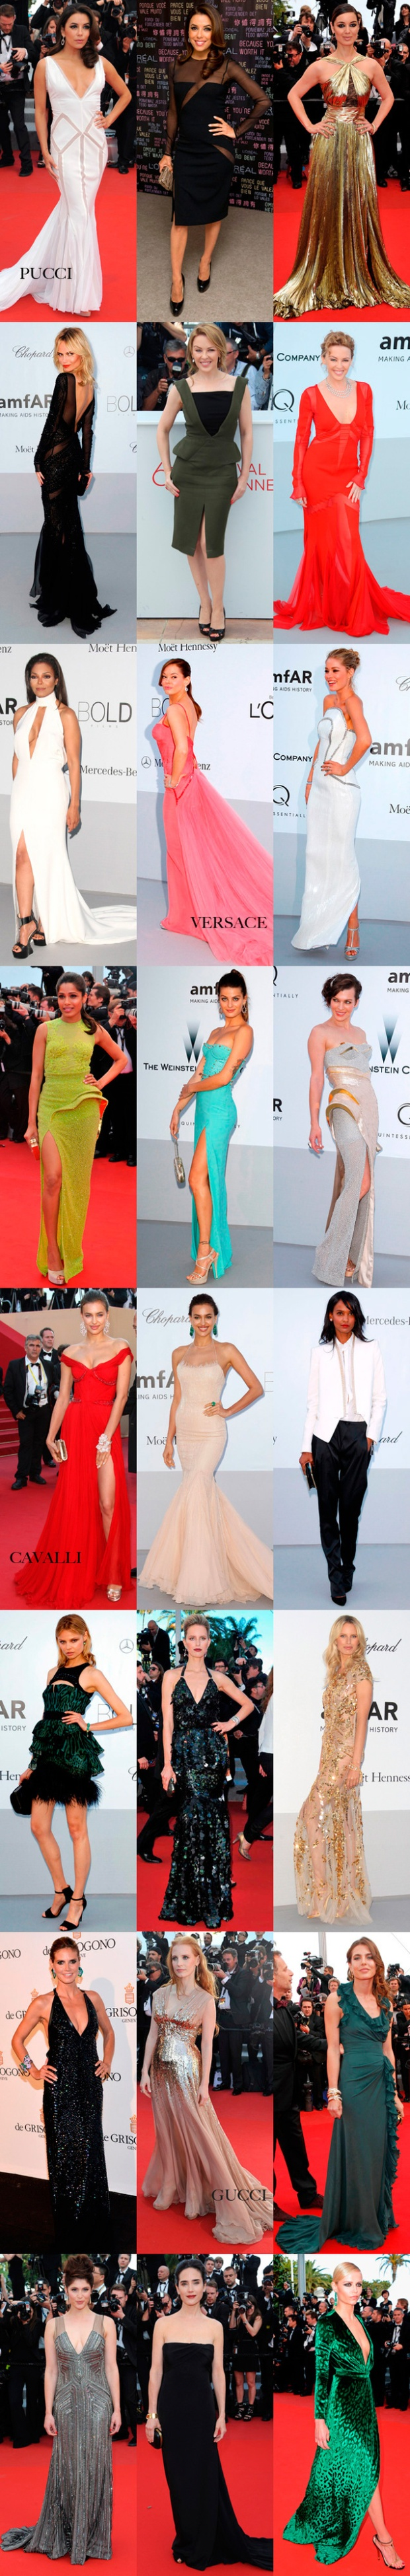 diseno-italia-moda-festival-cannes-2012-modaddiction-design-italy-fashion-red-carpet-alfombra-roja-haute-couture-alta-cultura-glamour-trends-tendencias-1